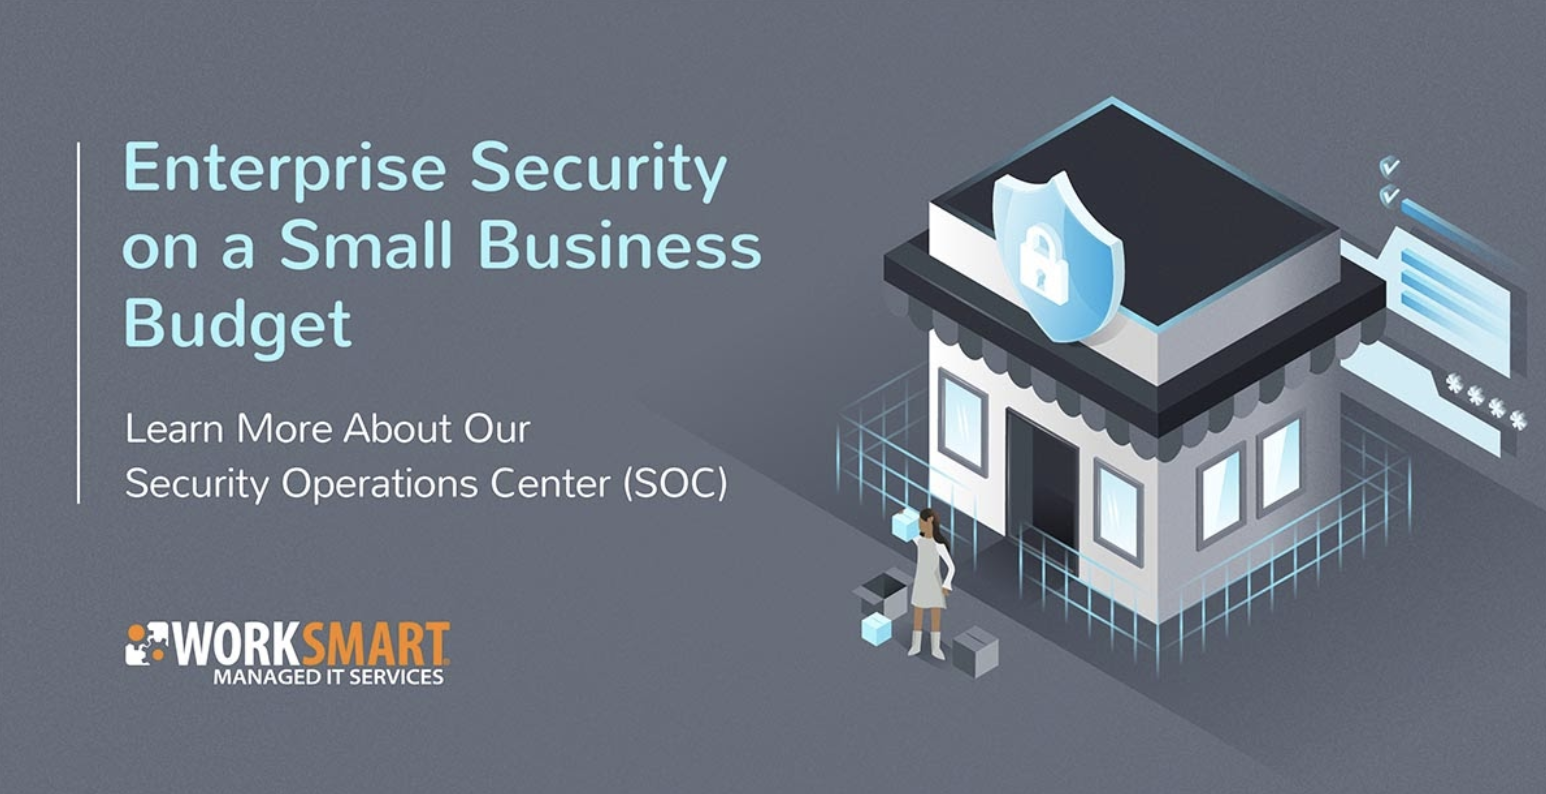 Enterprise Security on a Small Business Budget